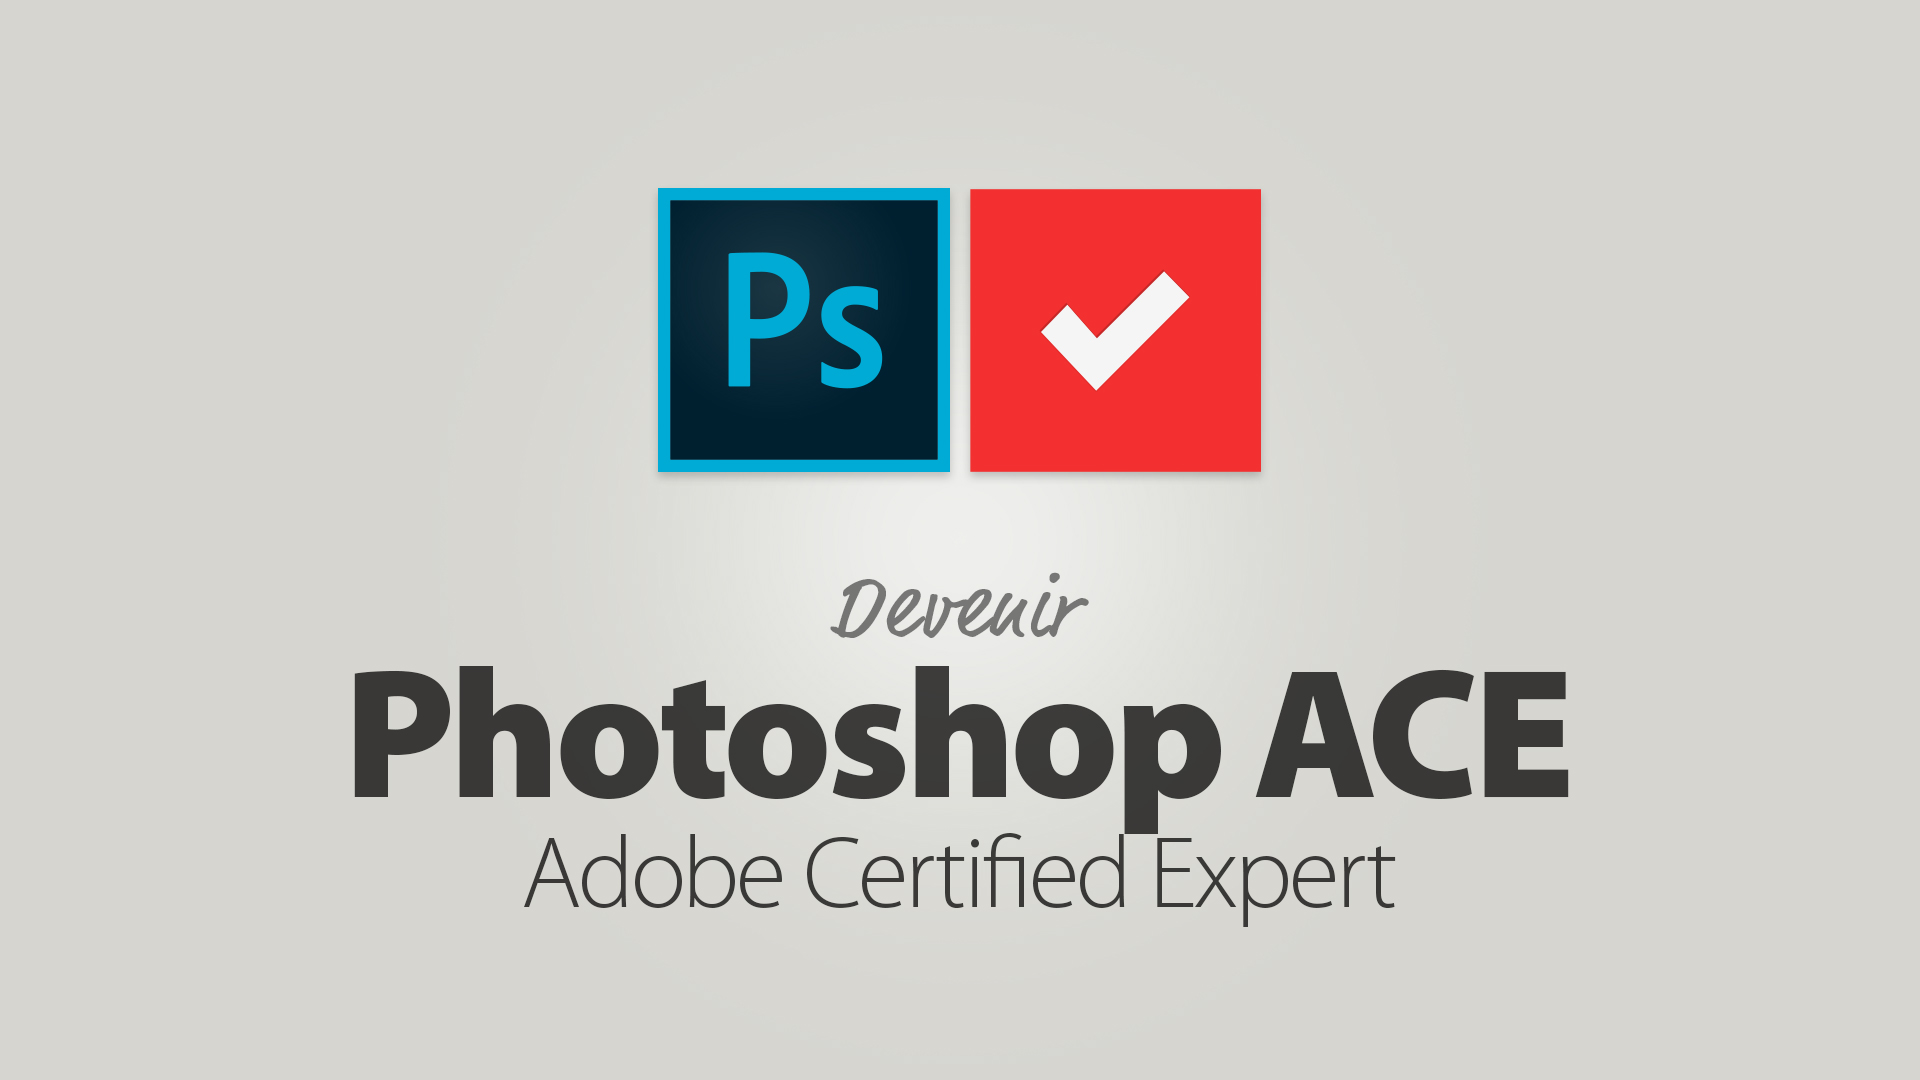 Devenir Photoshop Adobe Certified Expert